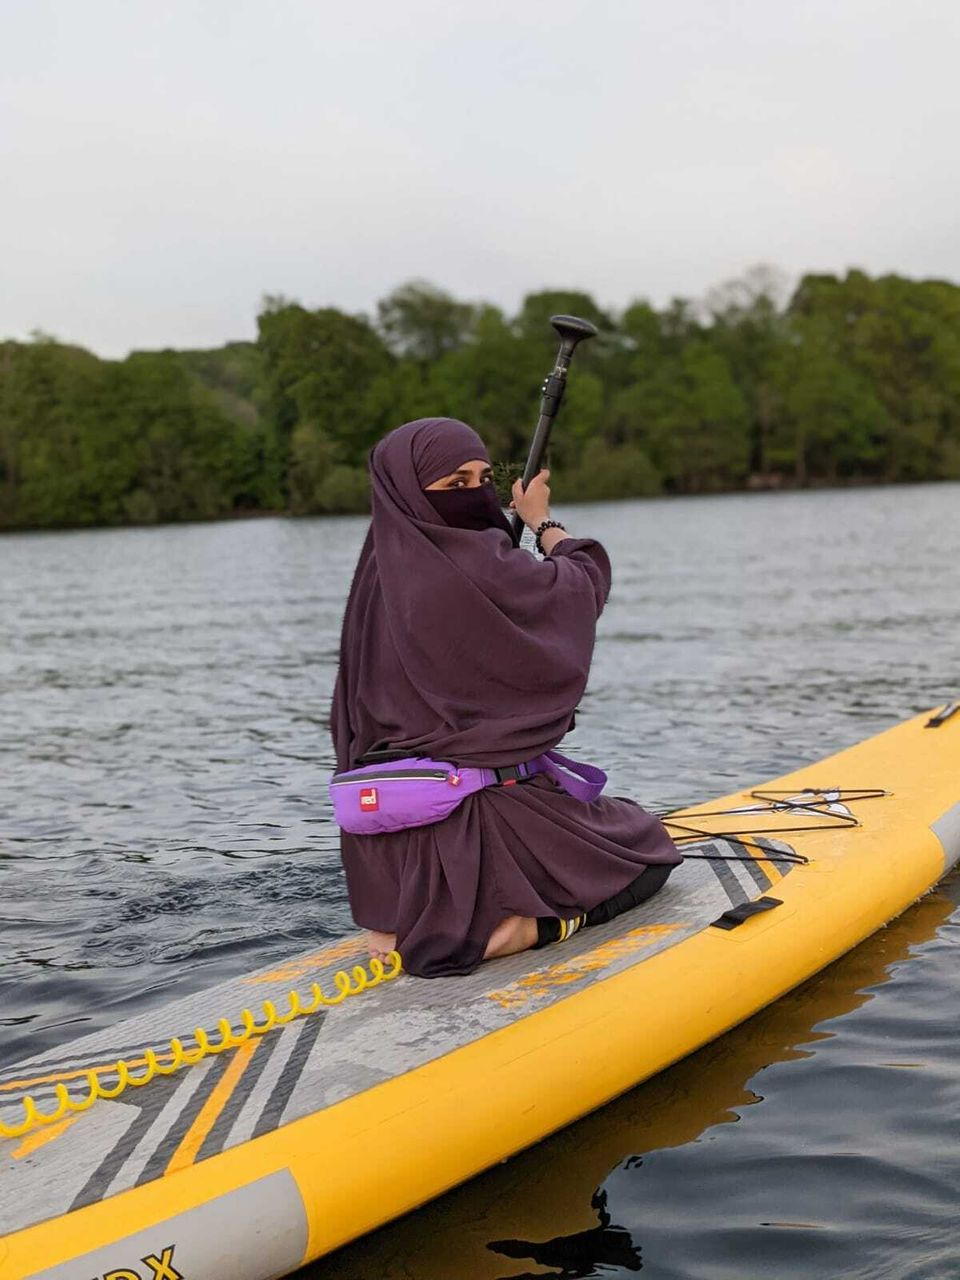 Amira started an outdoor adventure group to support Muslim women who want